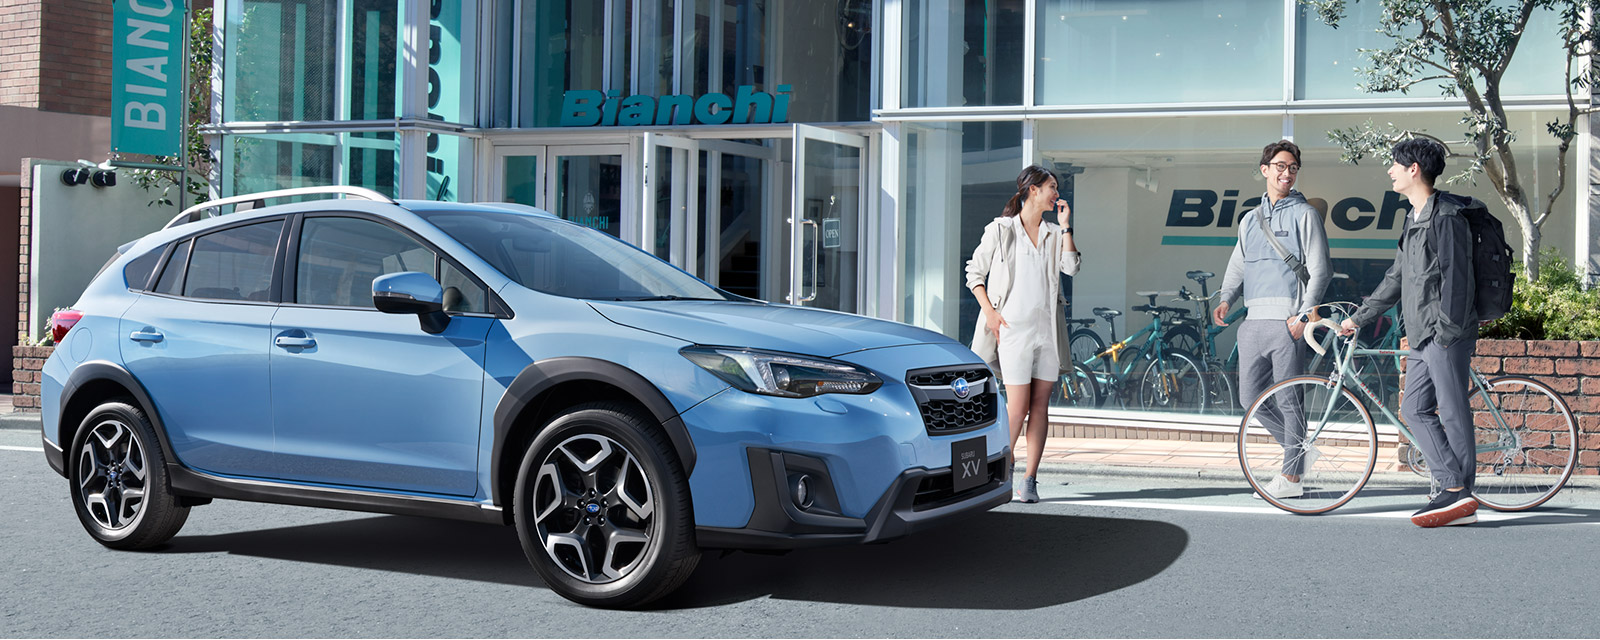 SUBARU XV 2.0i-S EyeSight サイドスタイル1